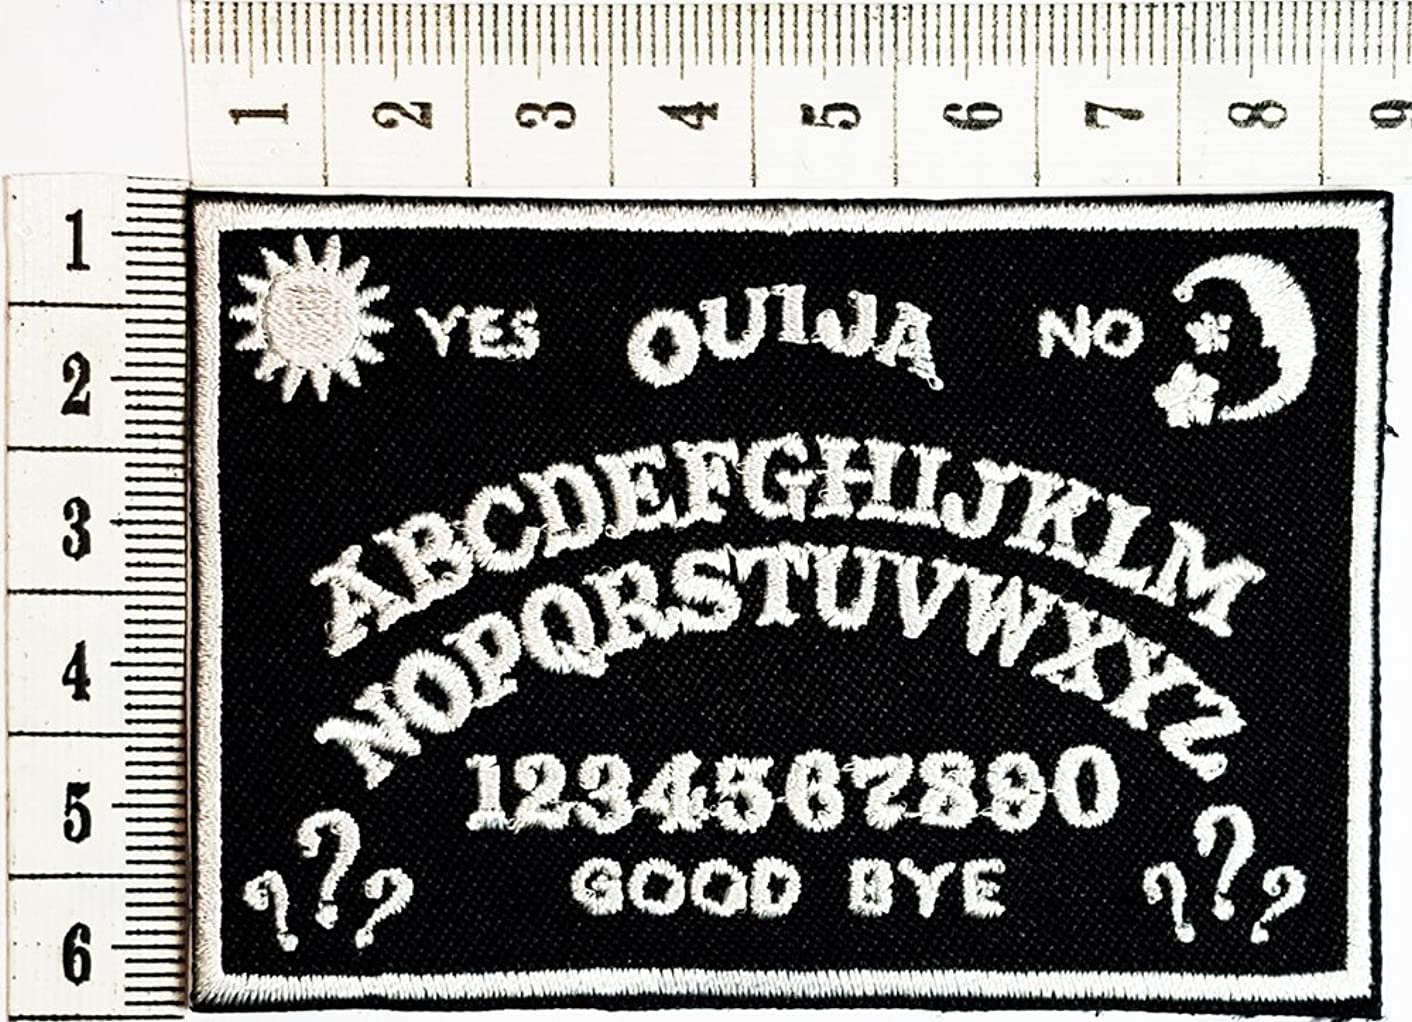 ABC Funny patch Motorcycles Outlaw Hog MC Biker Rider Hippie Punk Rock iron on patch / Sew On Patch Clothes Bag T-Shirt Jeans Biker Badge Applique